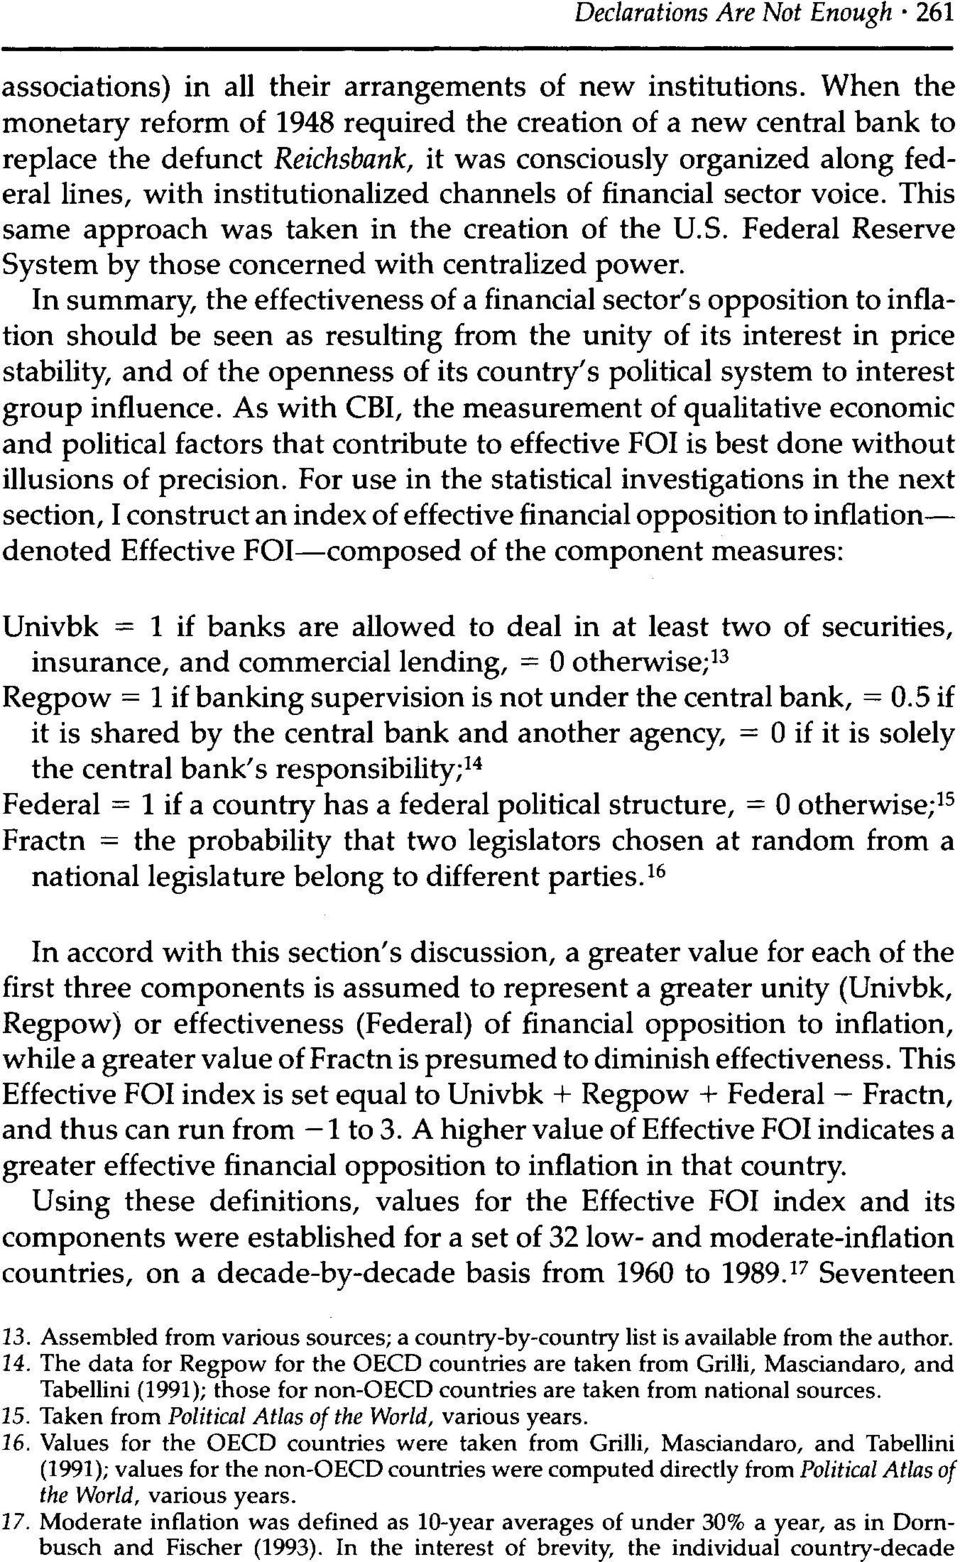 financial sector voice. This same approach was taken in the creation of the U.S. Federal Reserve System by those concerned with centralized power.